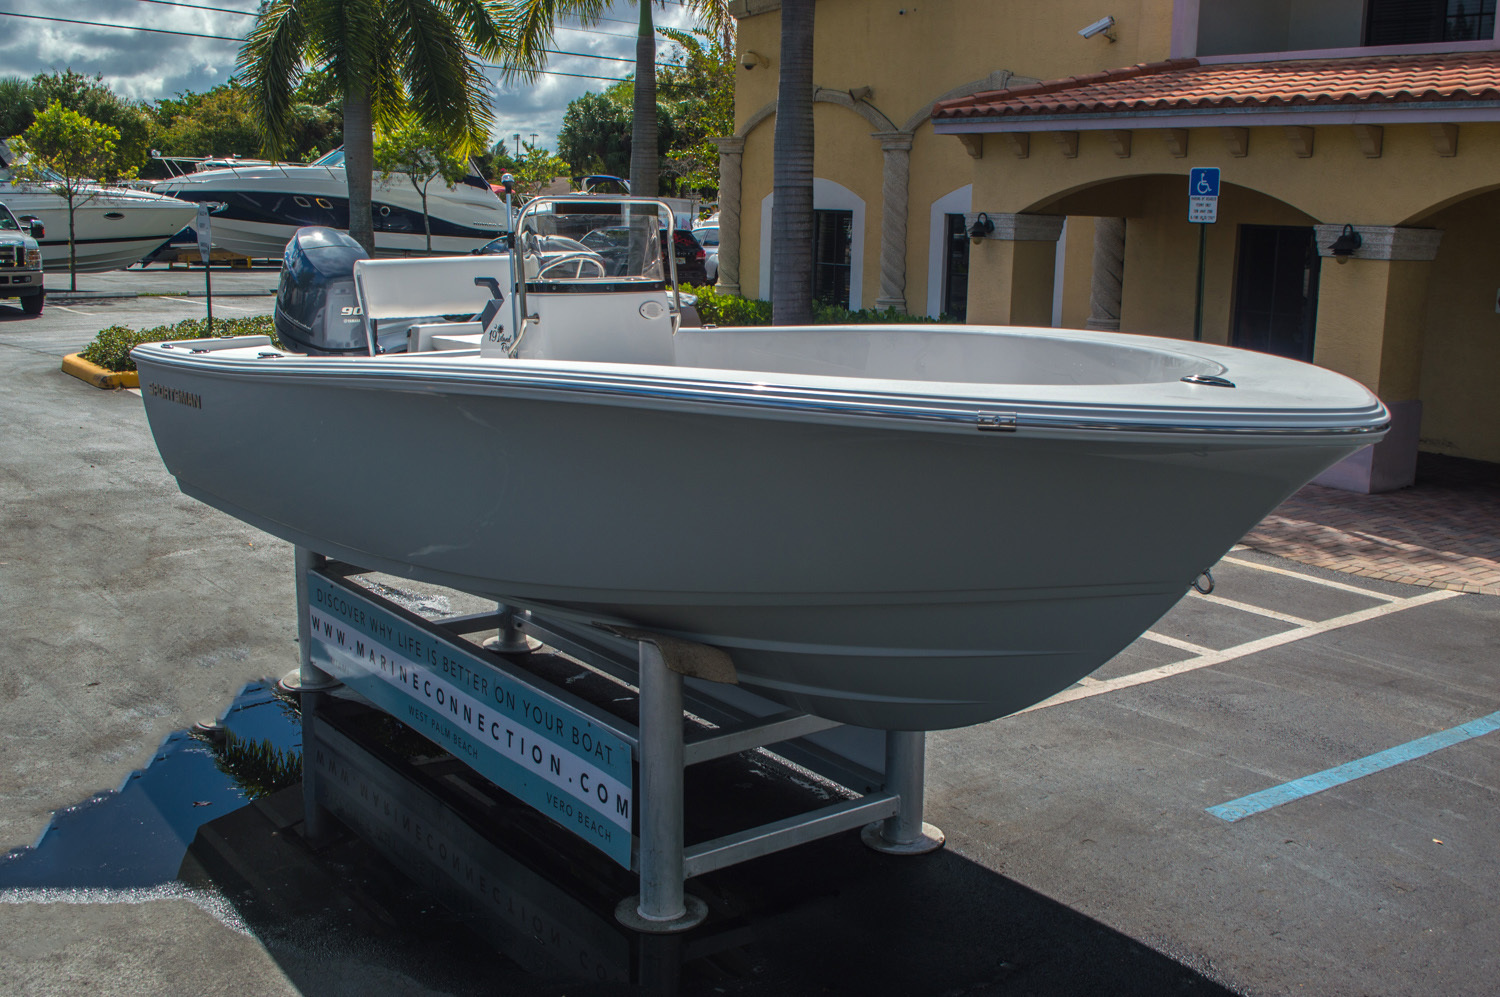 Thumbnail 10 for New 2016 Sportsman 19 Island Reef boat for sale in West Palm Beach, FL